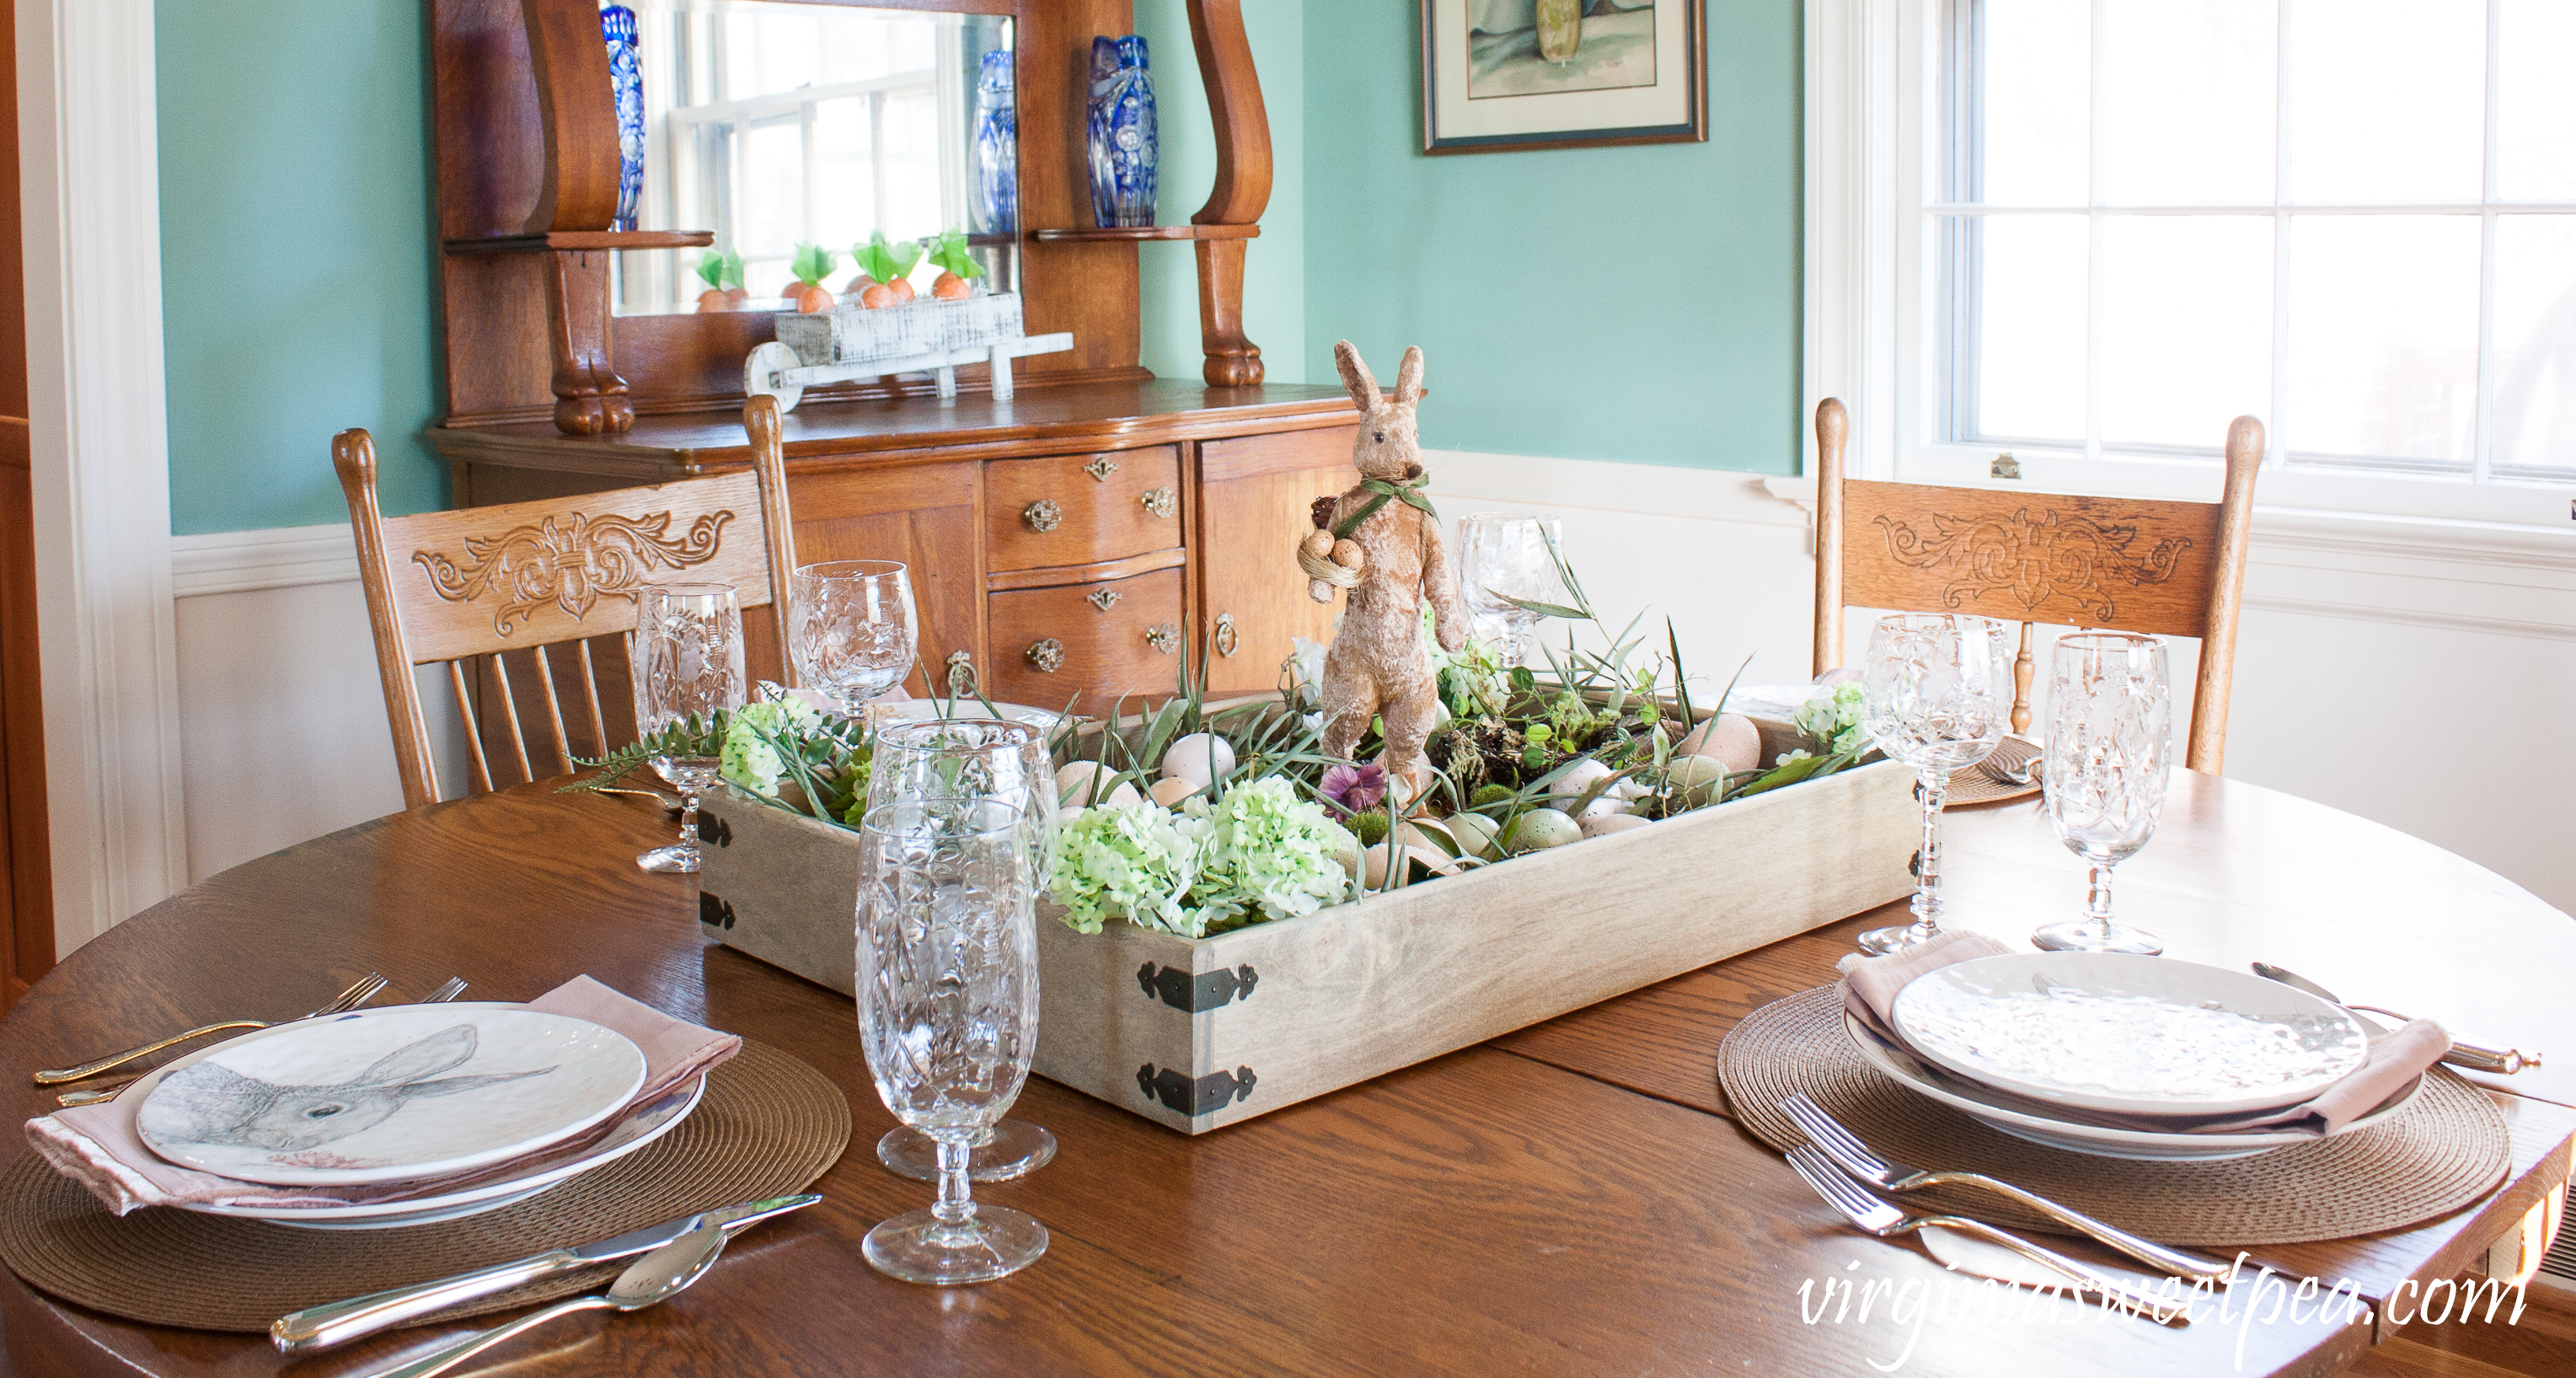 Farmhouse Style Easter Centerpiece and Easter Tablescape - Farmhouse Style Easter Centerpiece & Table - Get ideas for making a farmhouse style Easter centerpiece and ideas for table decor for your Easter table. #easter #eastercenterpiece #eastertablescape #farmhouse #farmhousecenterpiece #farmhousetable #eastertable